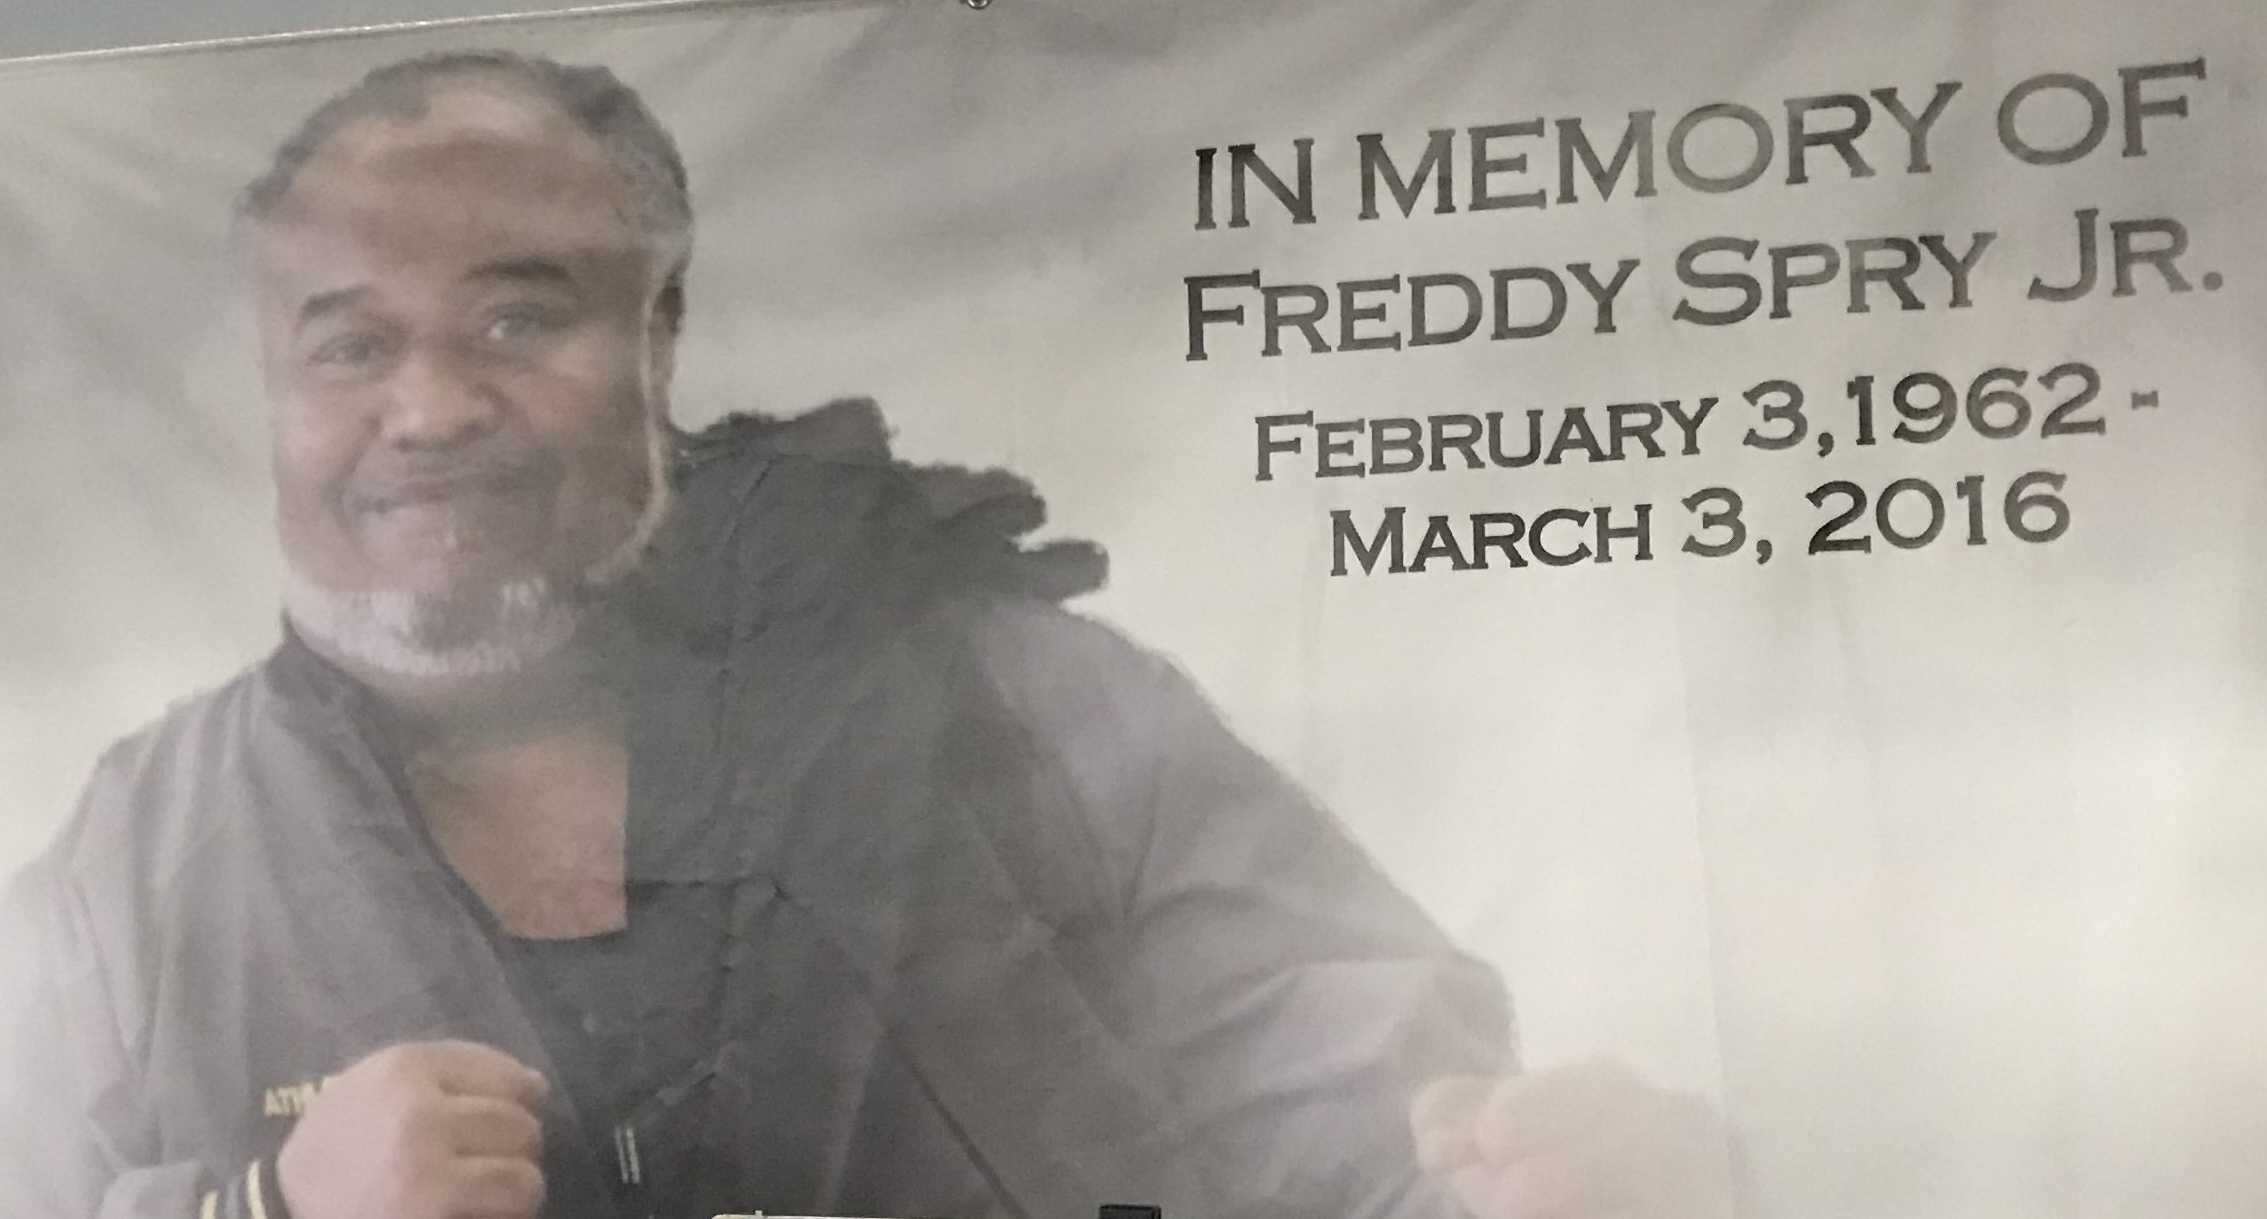 Be First Freddy Spry poster